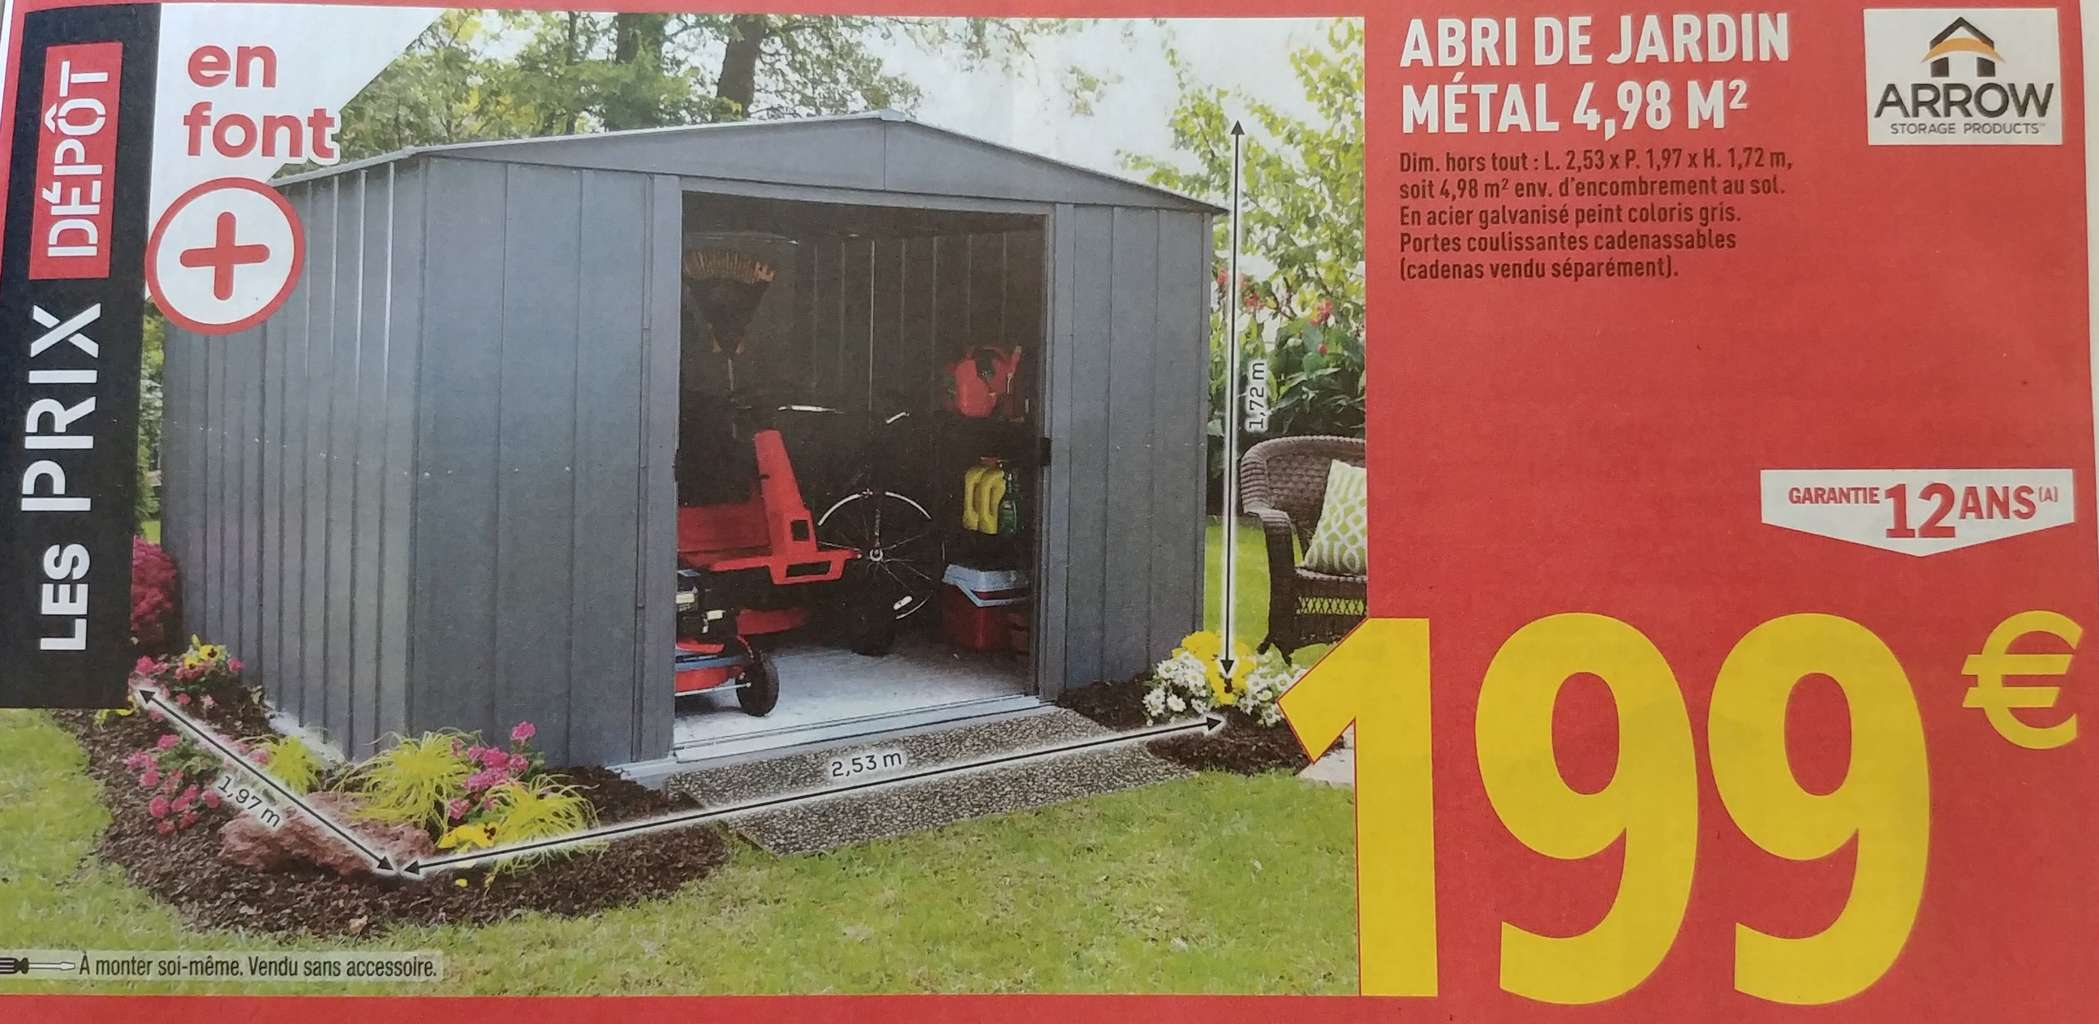 Abri De Jardin Metal Arrow 4 98m 2 53 X 1 97 M Dealabs Com